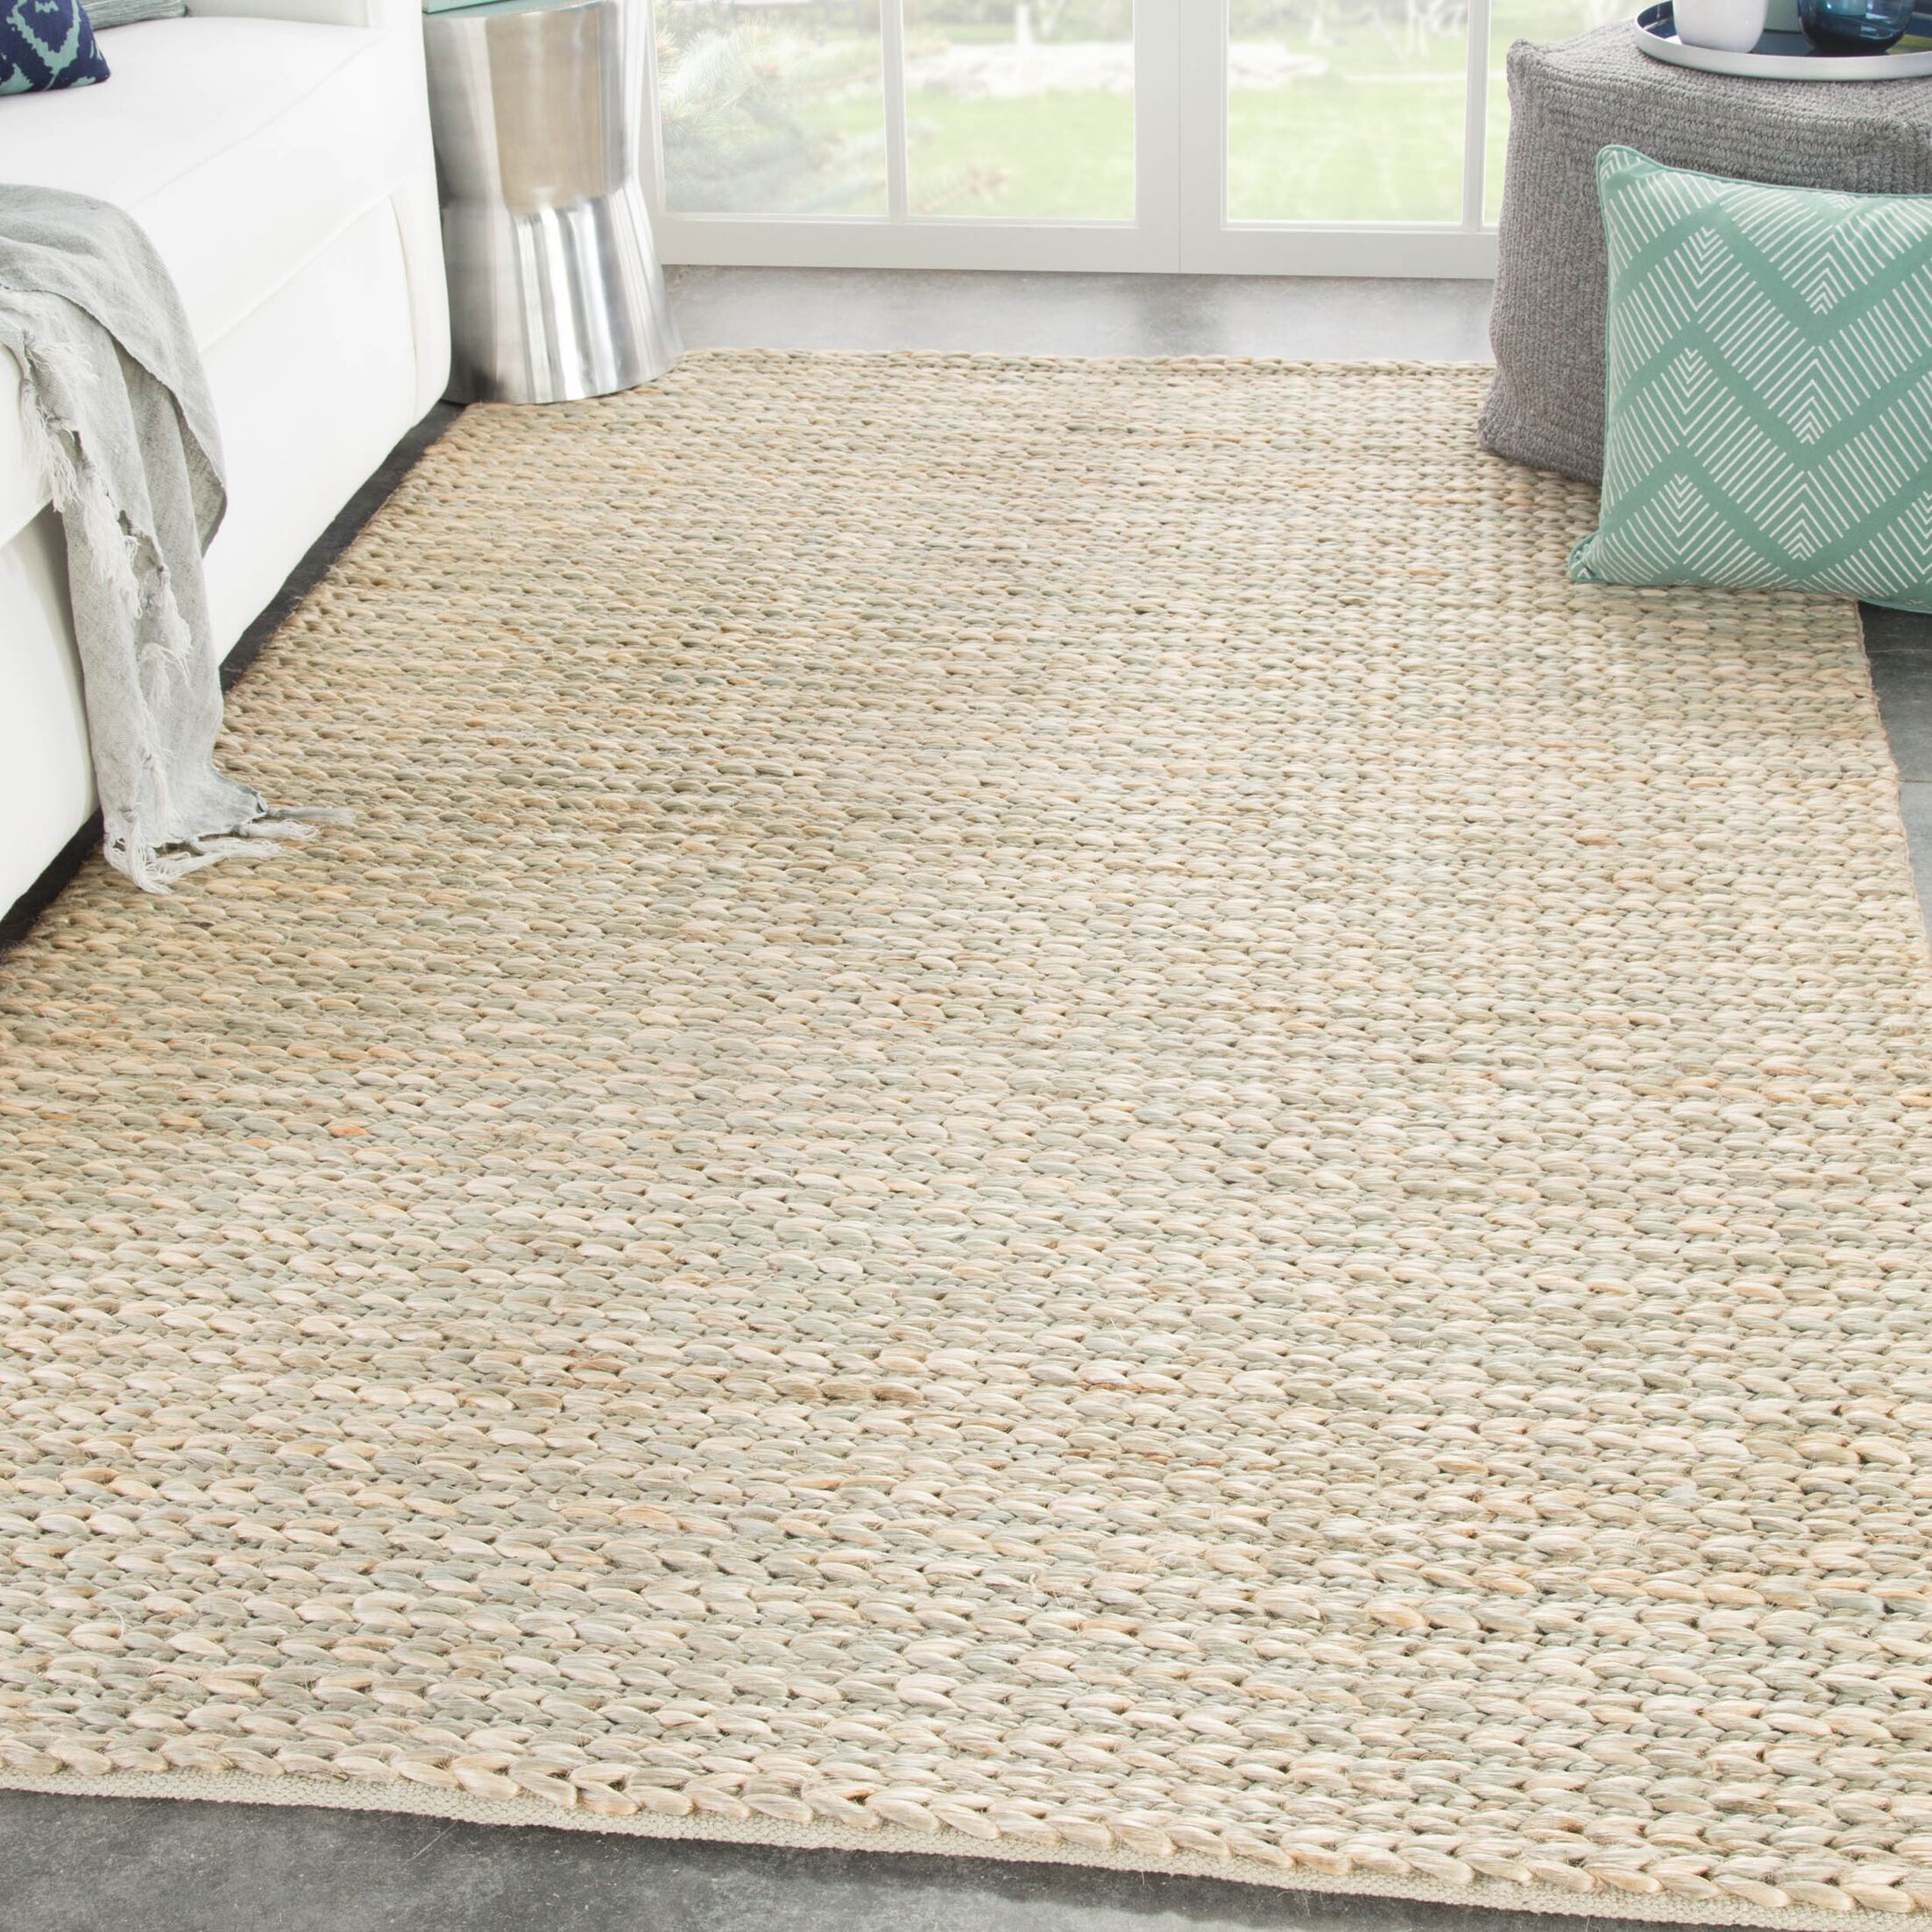 Giselle Solid Natural Tan Area Rug Rug Size: Rectangle 9' x 12'